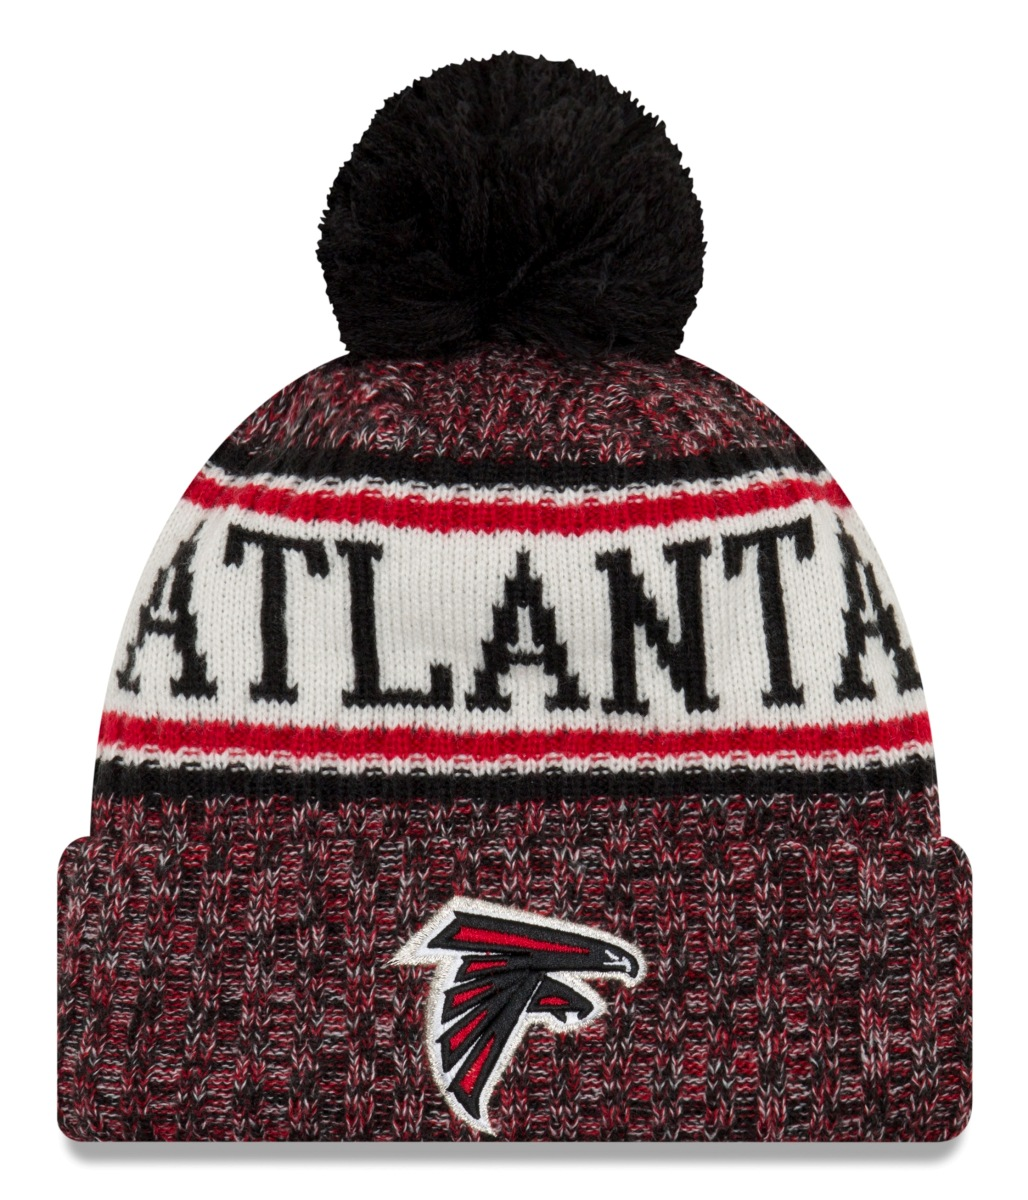 Atlanta Falcons New Era 2018 NFL Sideline On Field Sport Knit Hat - Red